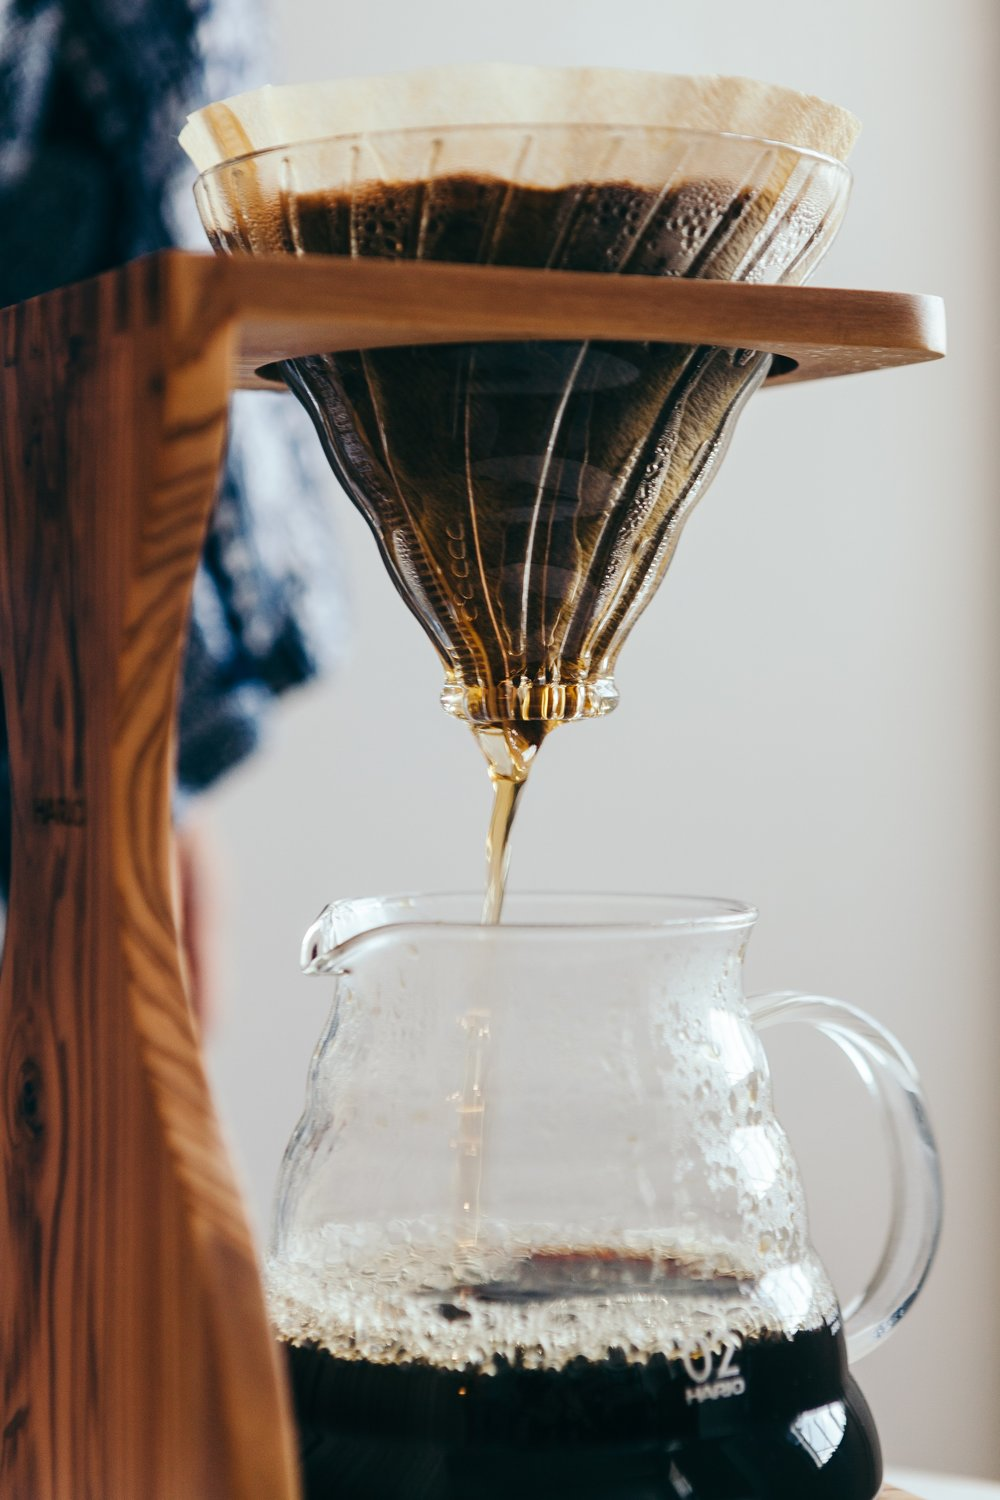 water in coffee